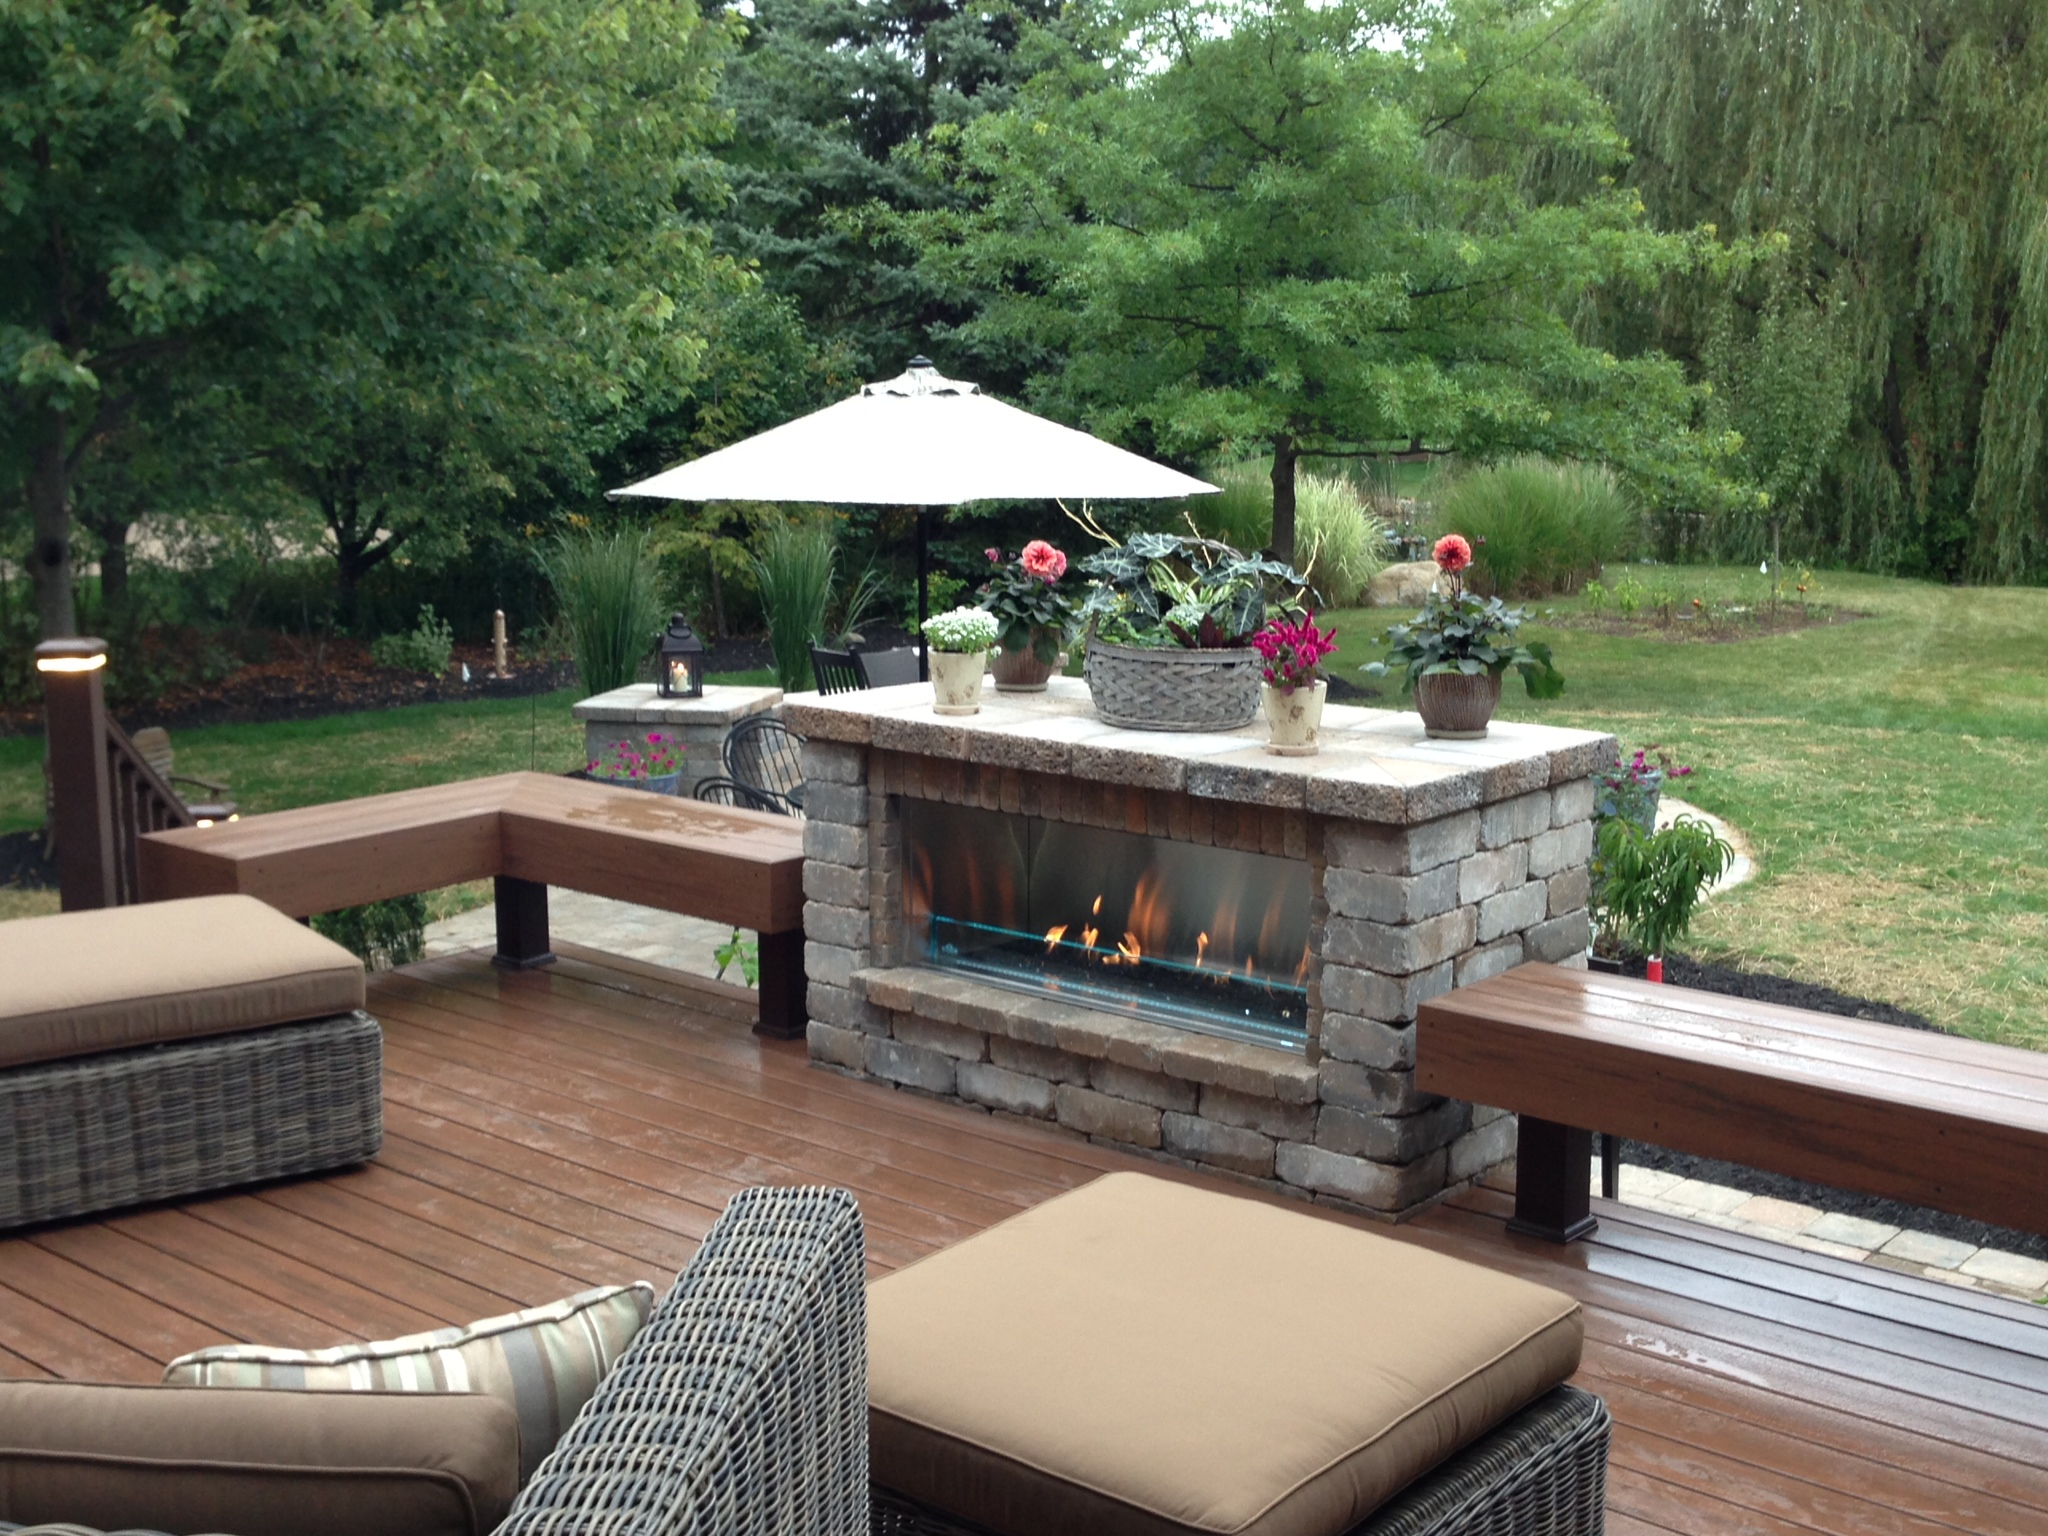 Outdoor Linear Fireplace & Deck